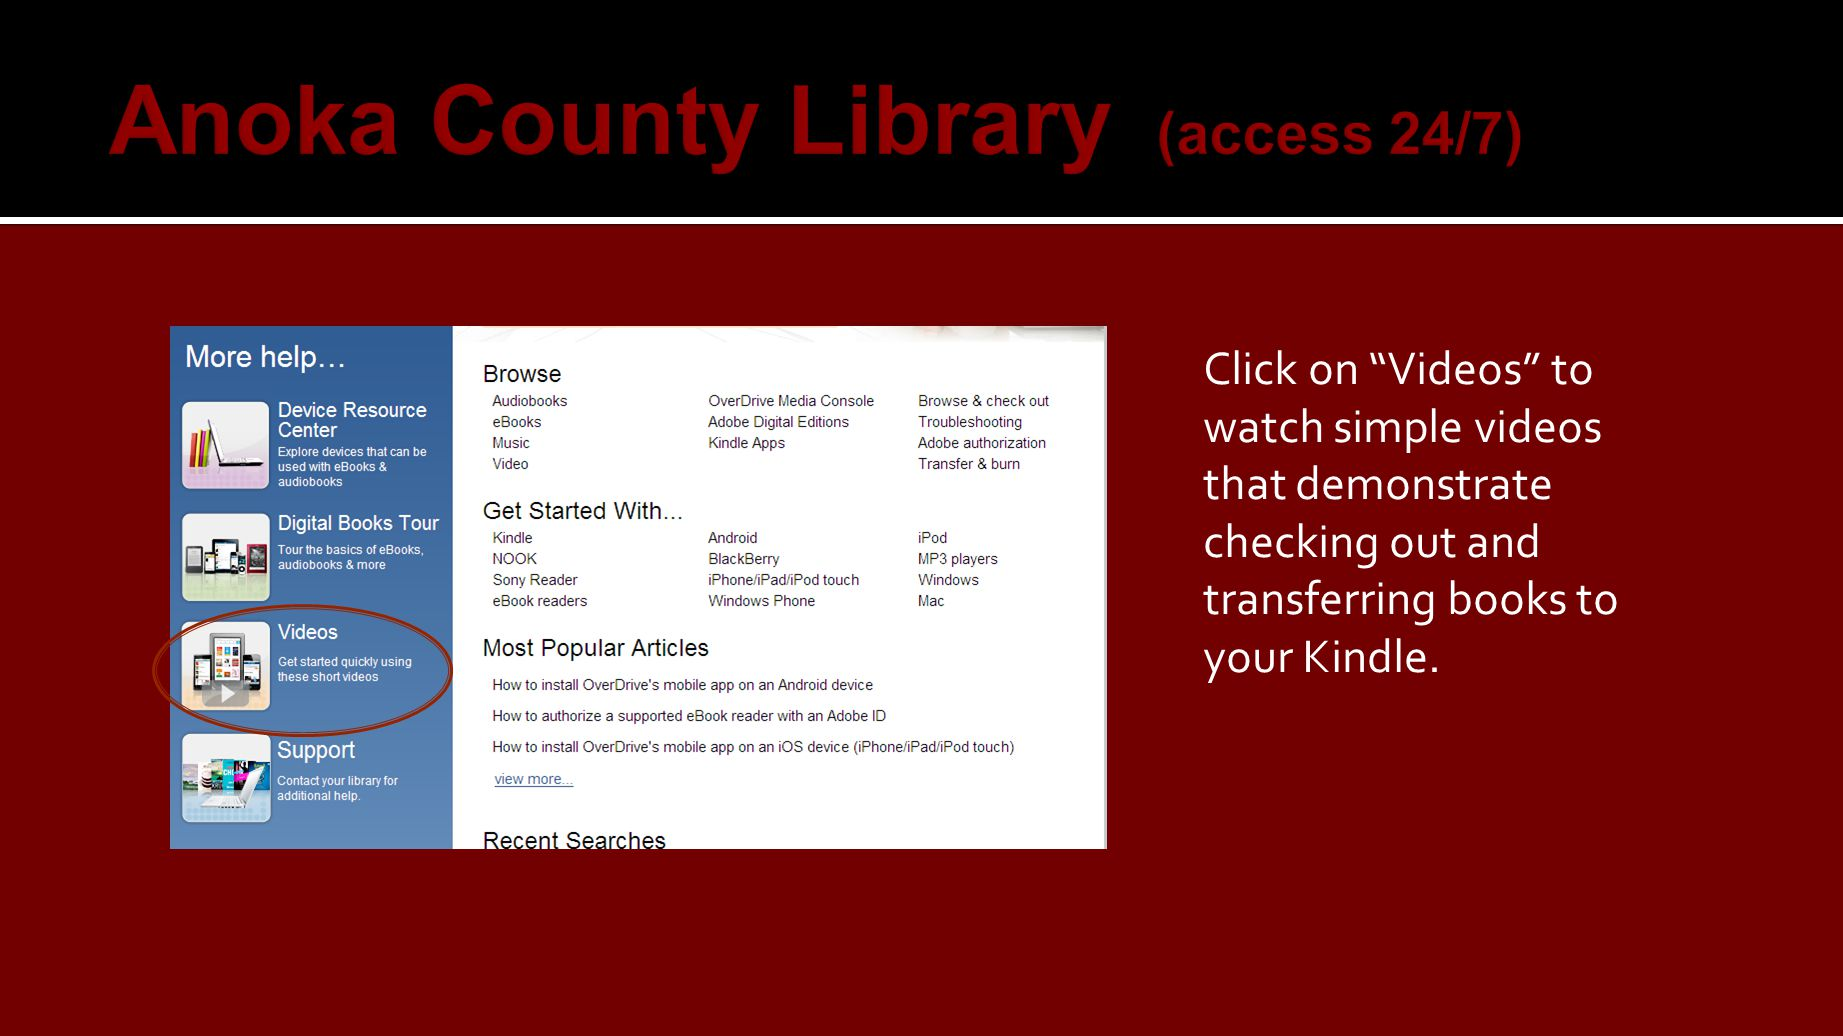 Click on Videos to watch simple videos that demonstrate checking out and transferring books to your Kindle.